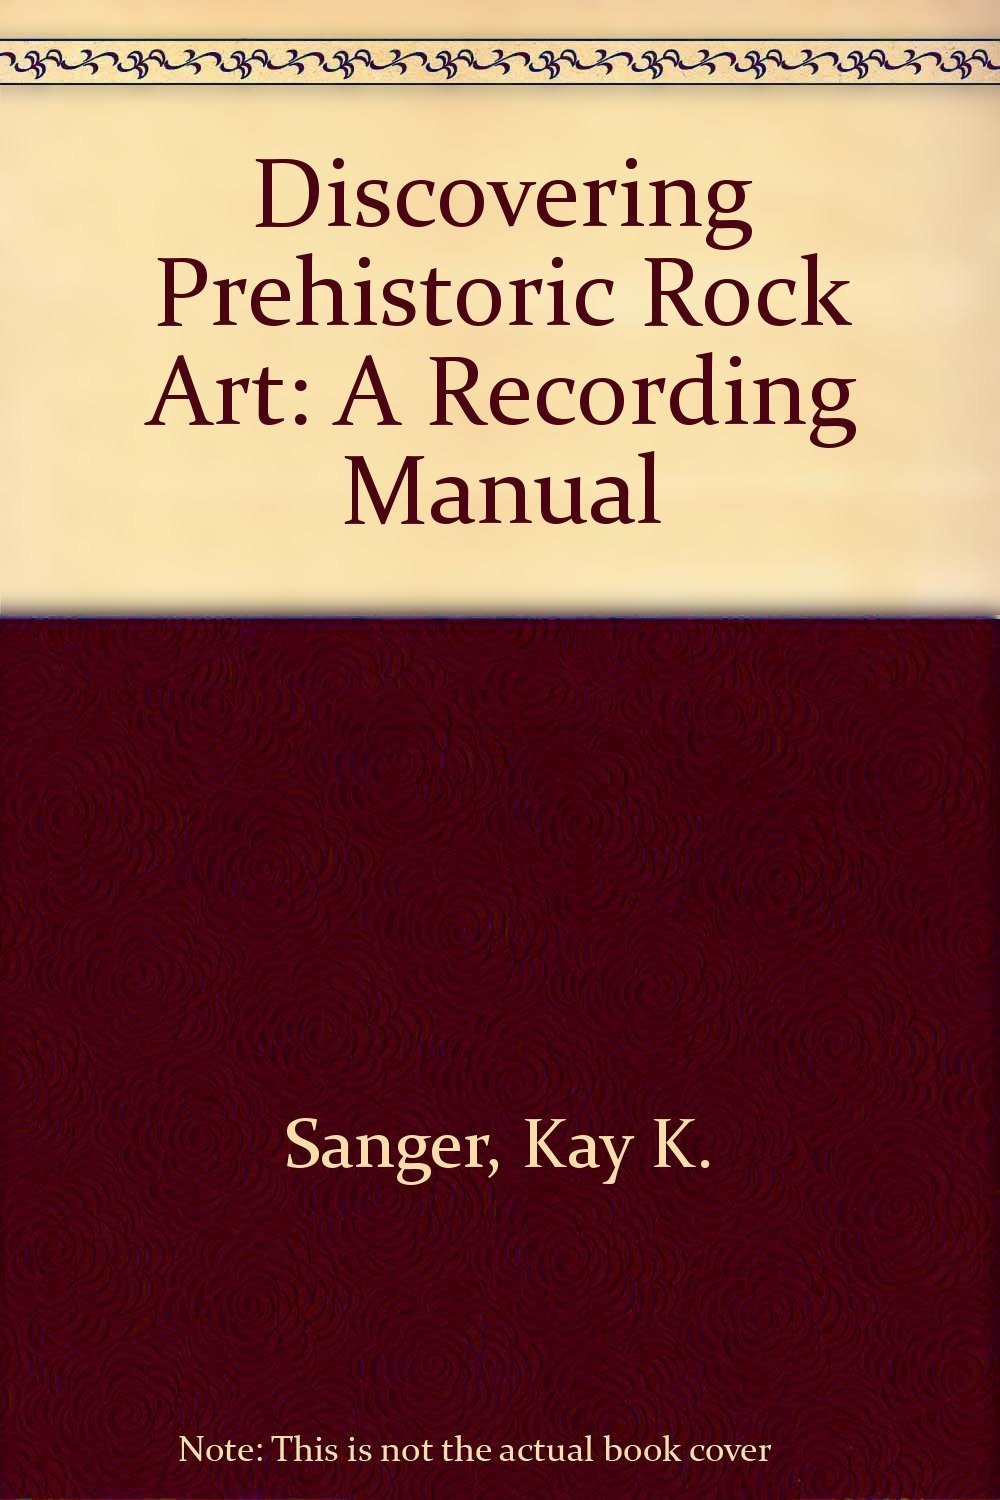 Discovering Prehistoric Rock Art: A Recording Manual: Amazon.co.uk: Kay K.  Sanger, Clement W. Meighan: 9780937523032: Books